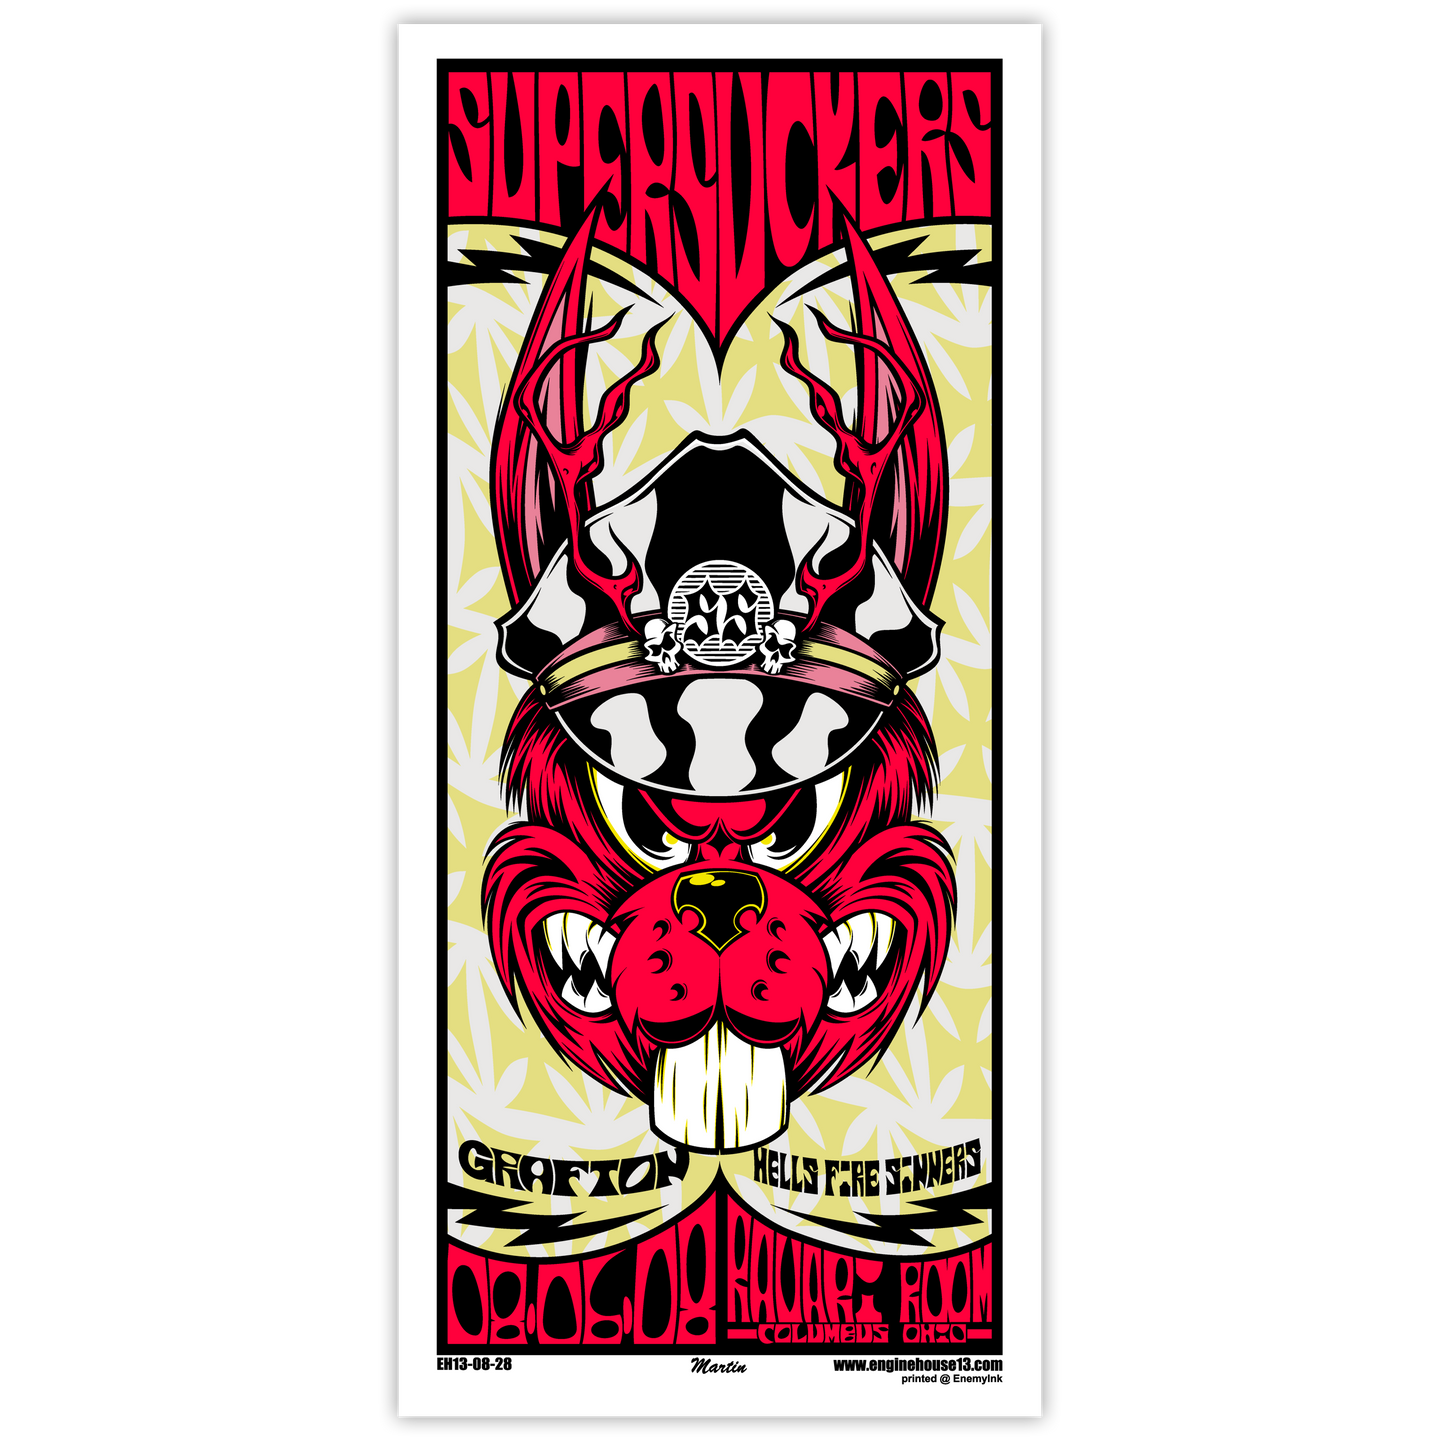 Supersuckers Poster